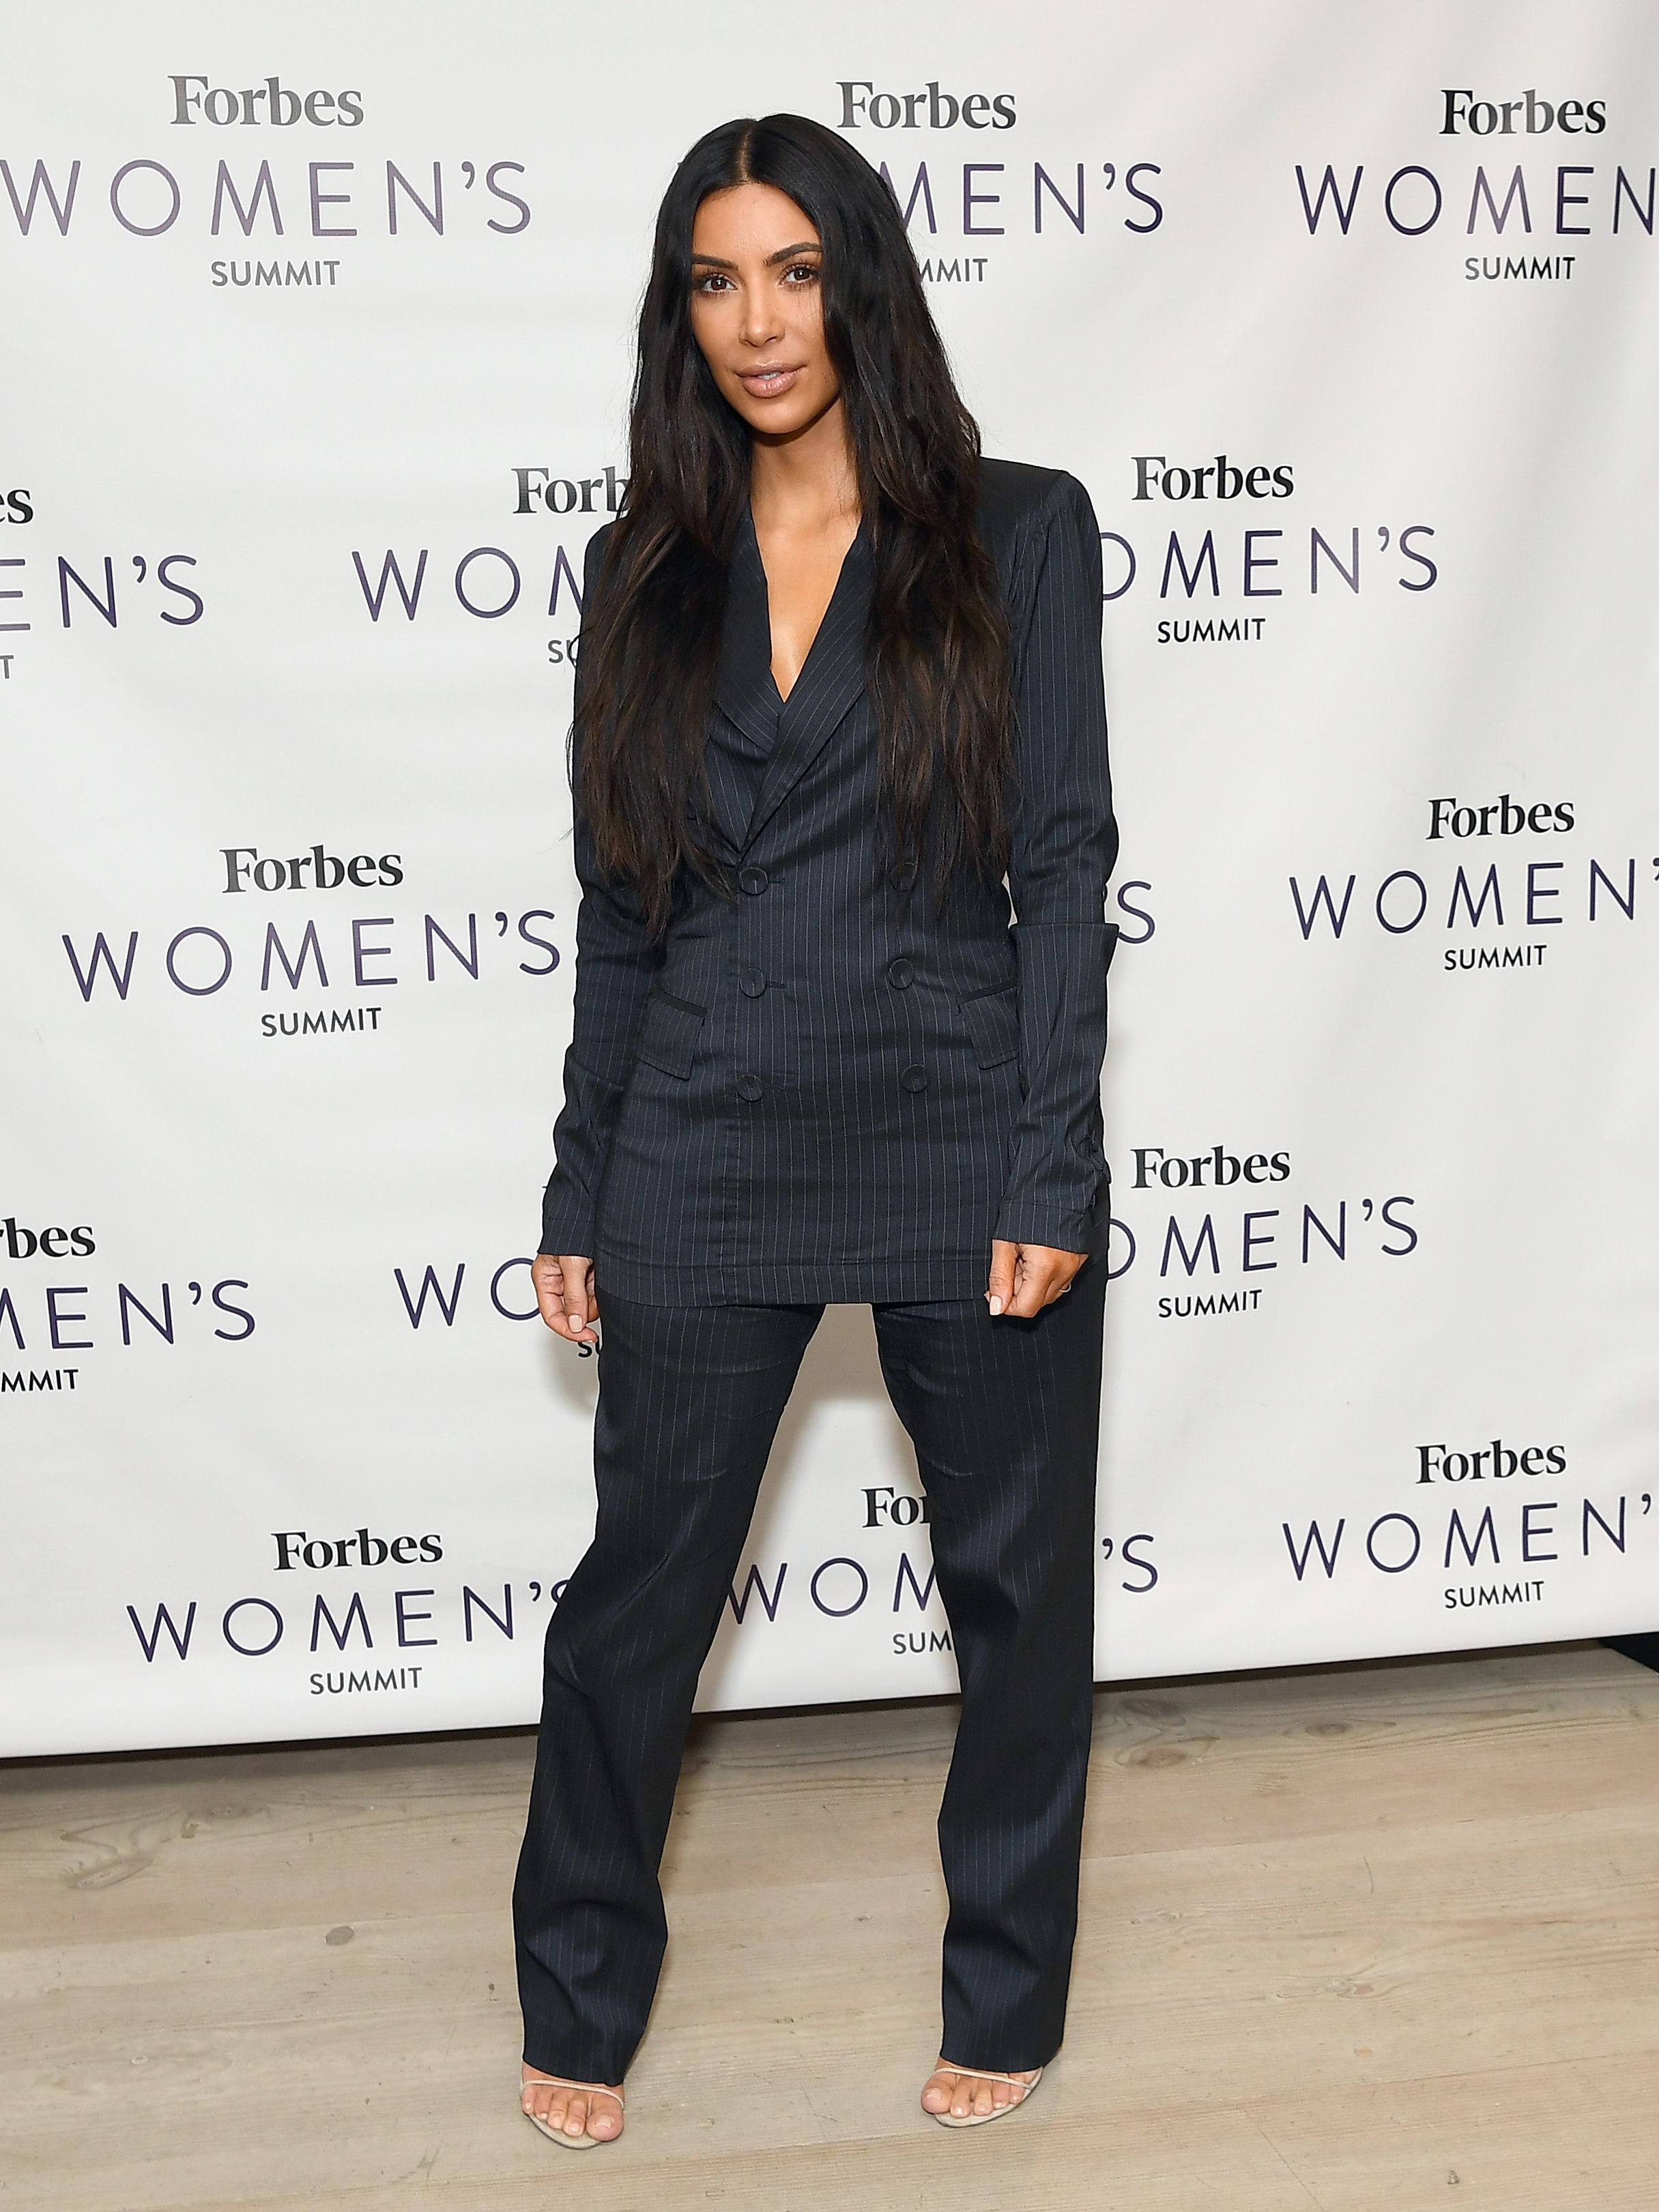 Women in Suits - Female Celebrities in Pant Suits and Tuxedos dca8bc060d